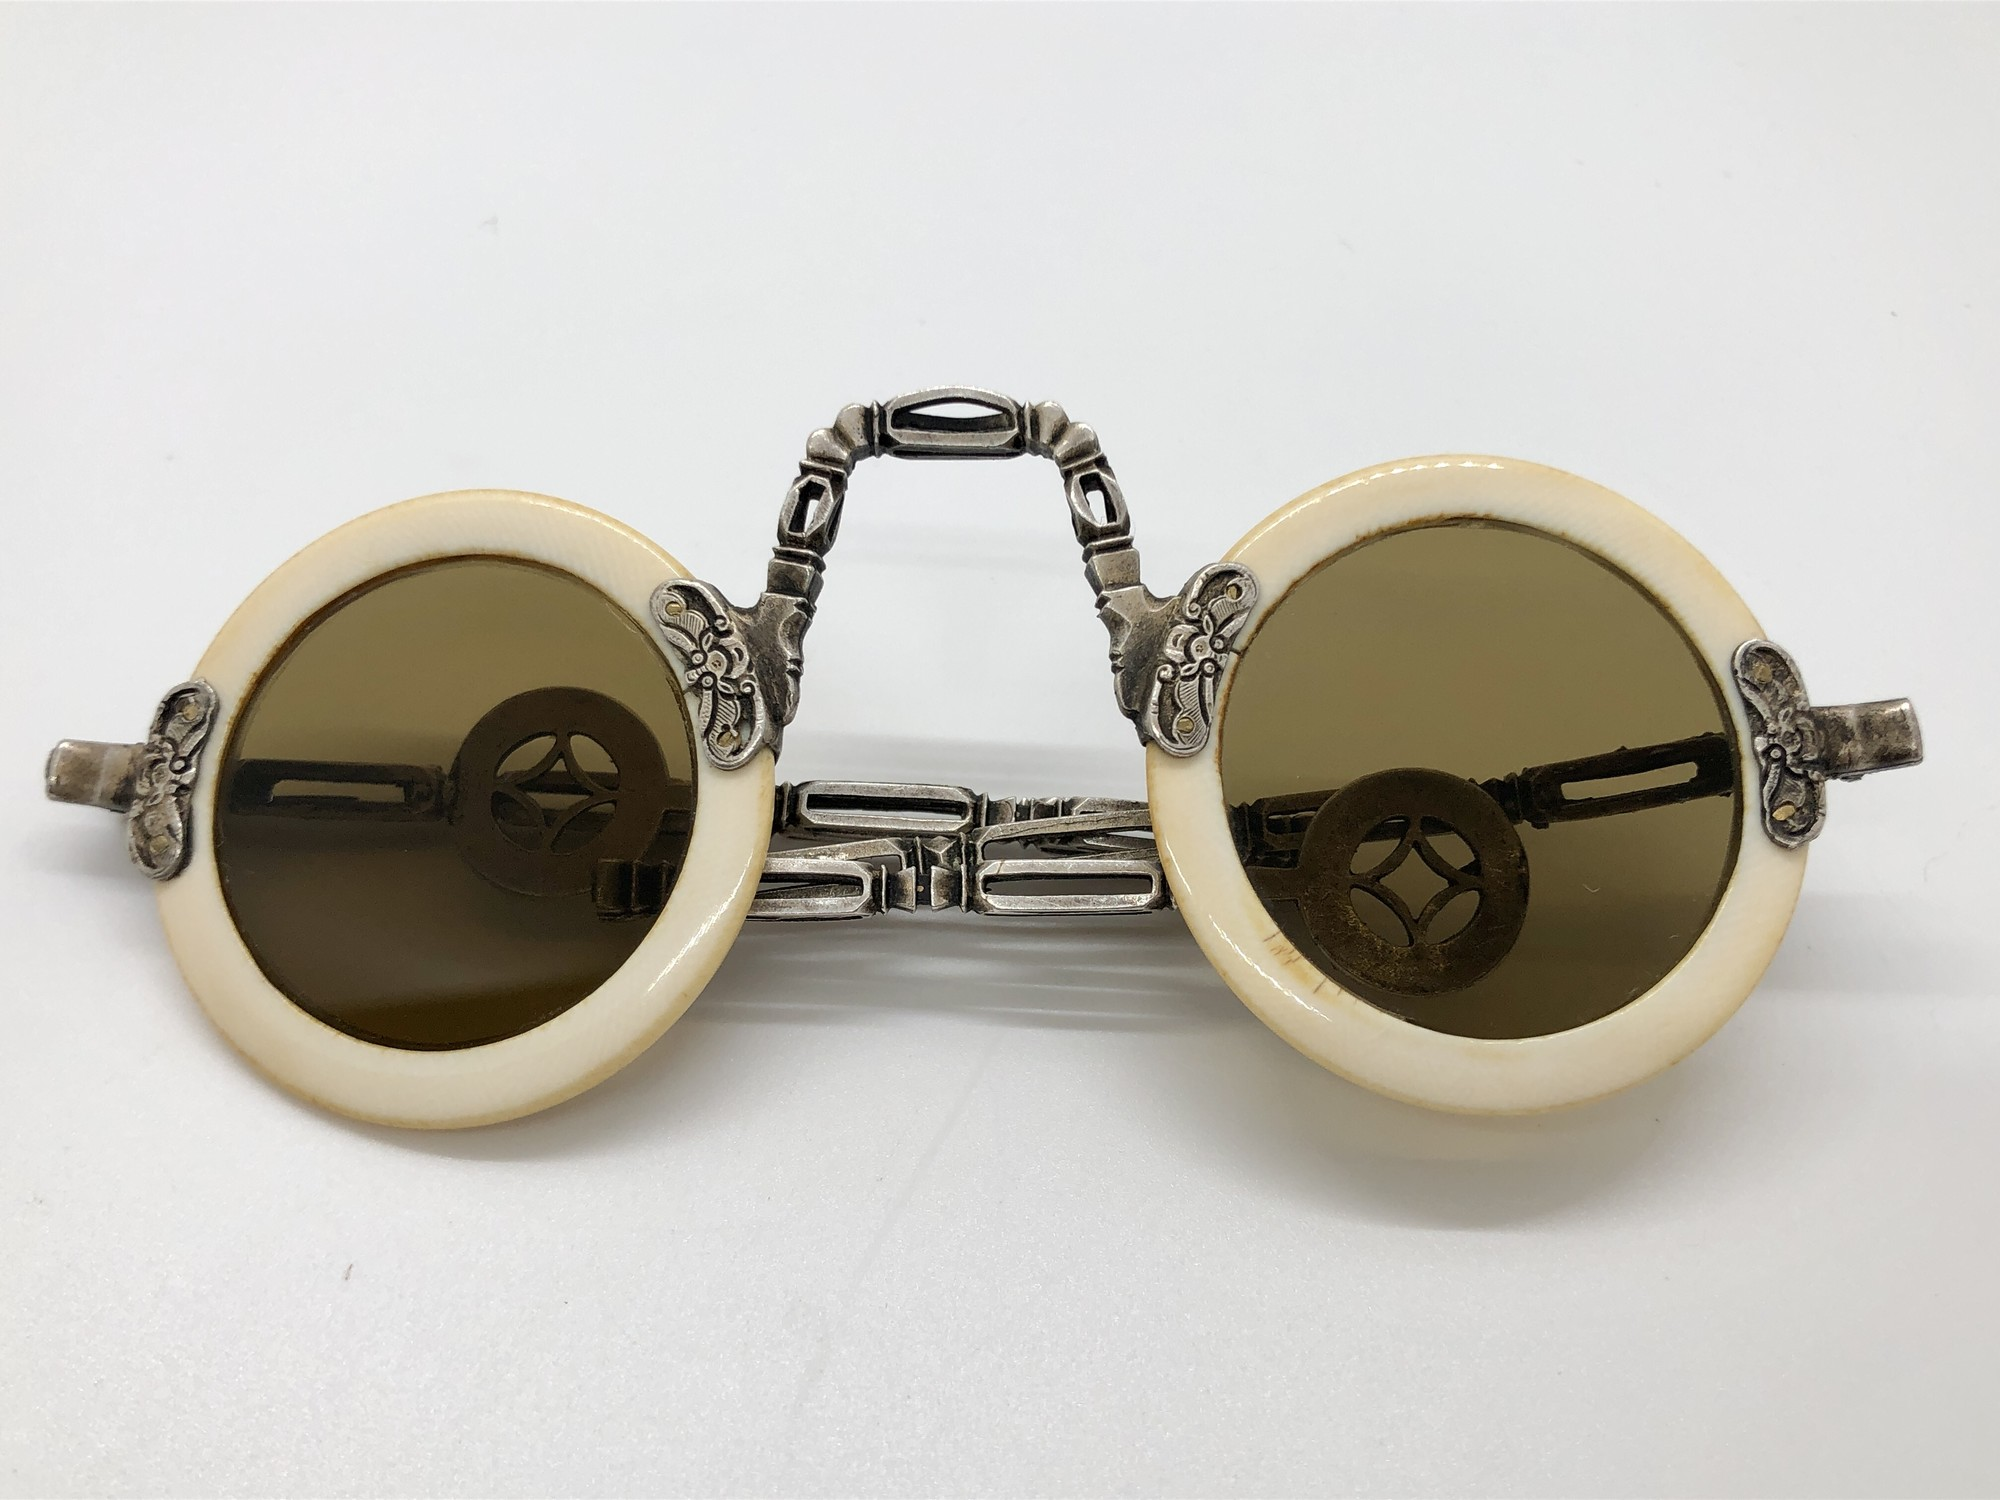 Qing Dynasty Chinese Round Sunglasses. Rims made of  bone and lenses are smokey quartz. Beautifully crafted white metal open work, articulating arms and coin shaped ends c.1800s.<br /> Will ship USPO priority mail.